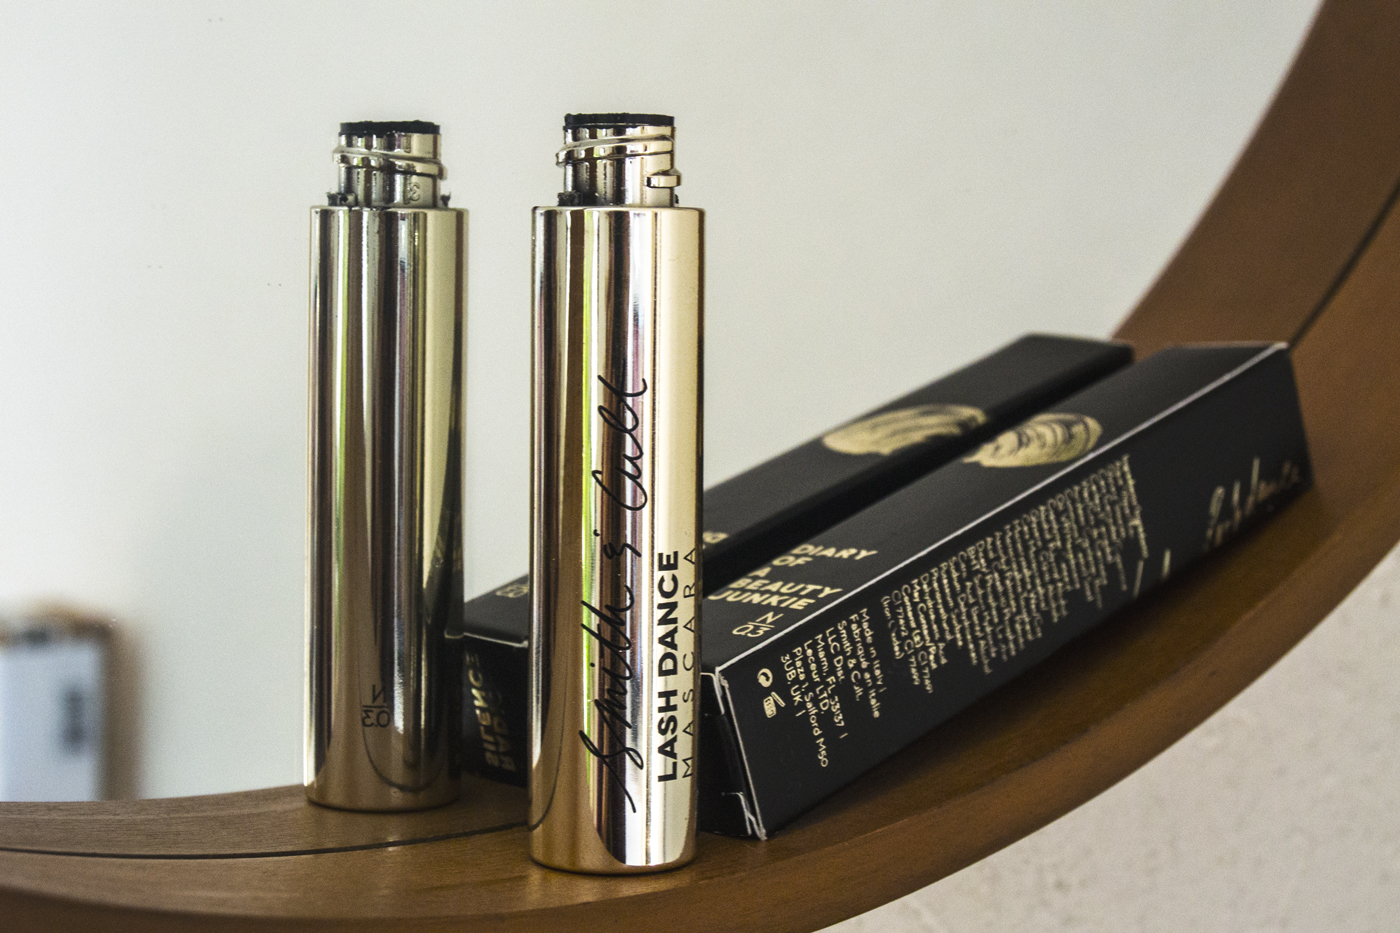 Volume et longueur avec le mascara « Lash Dance » de Smith & Cult